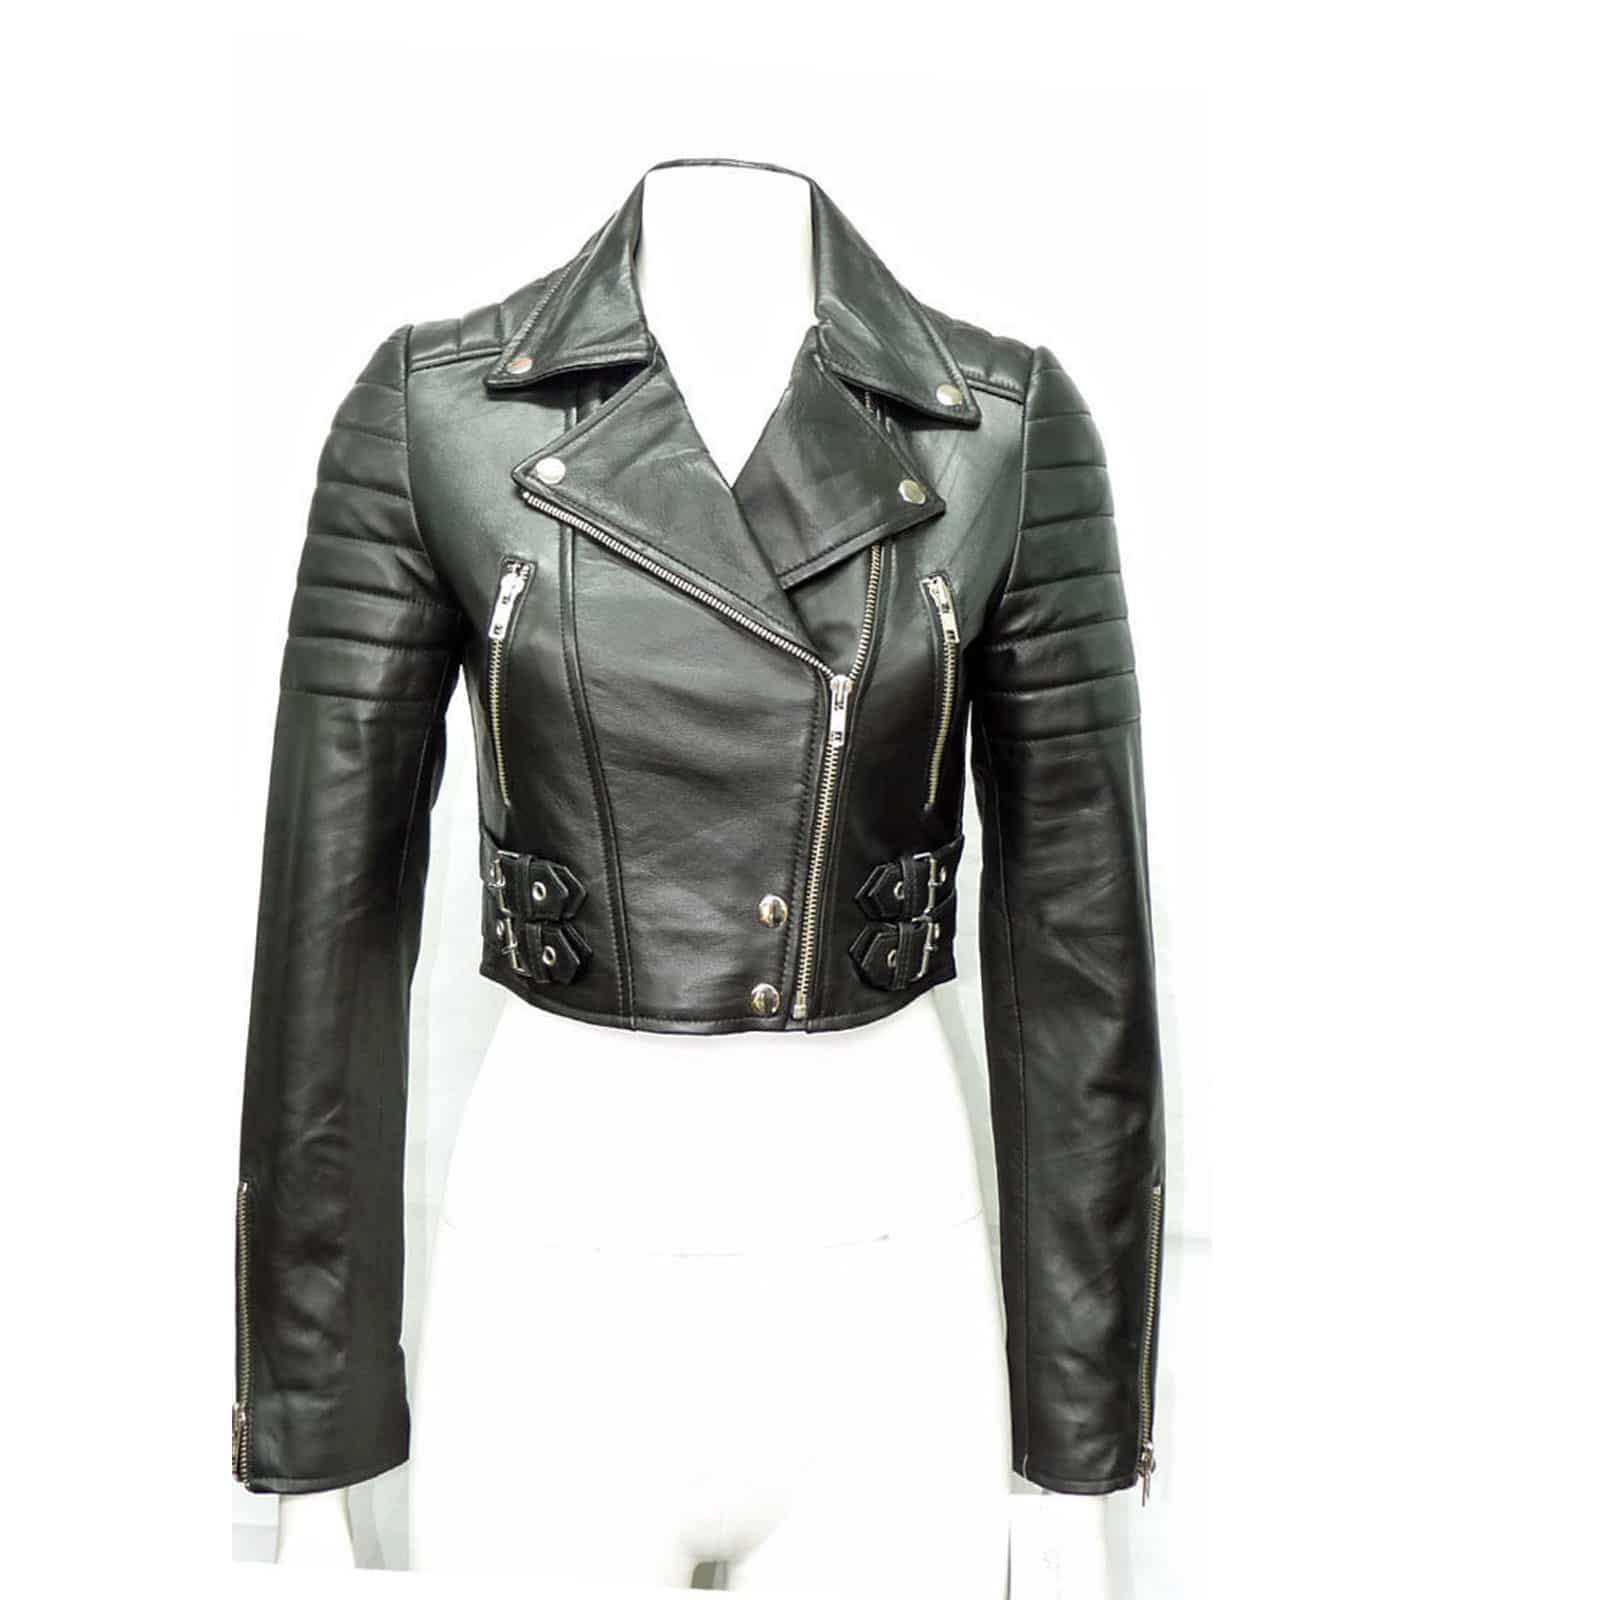 524757f9c62 2018 2017 Winter Coat Women Casual Black Leather Jacket Women Long Sleeve  Motorcycle Jacket Letter Womens Clothing From Cagney